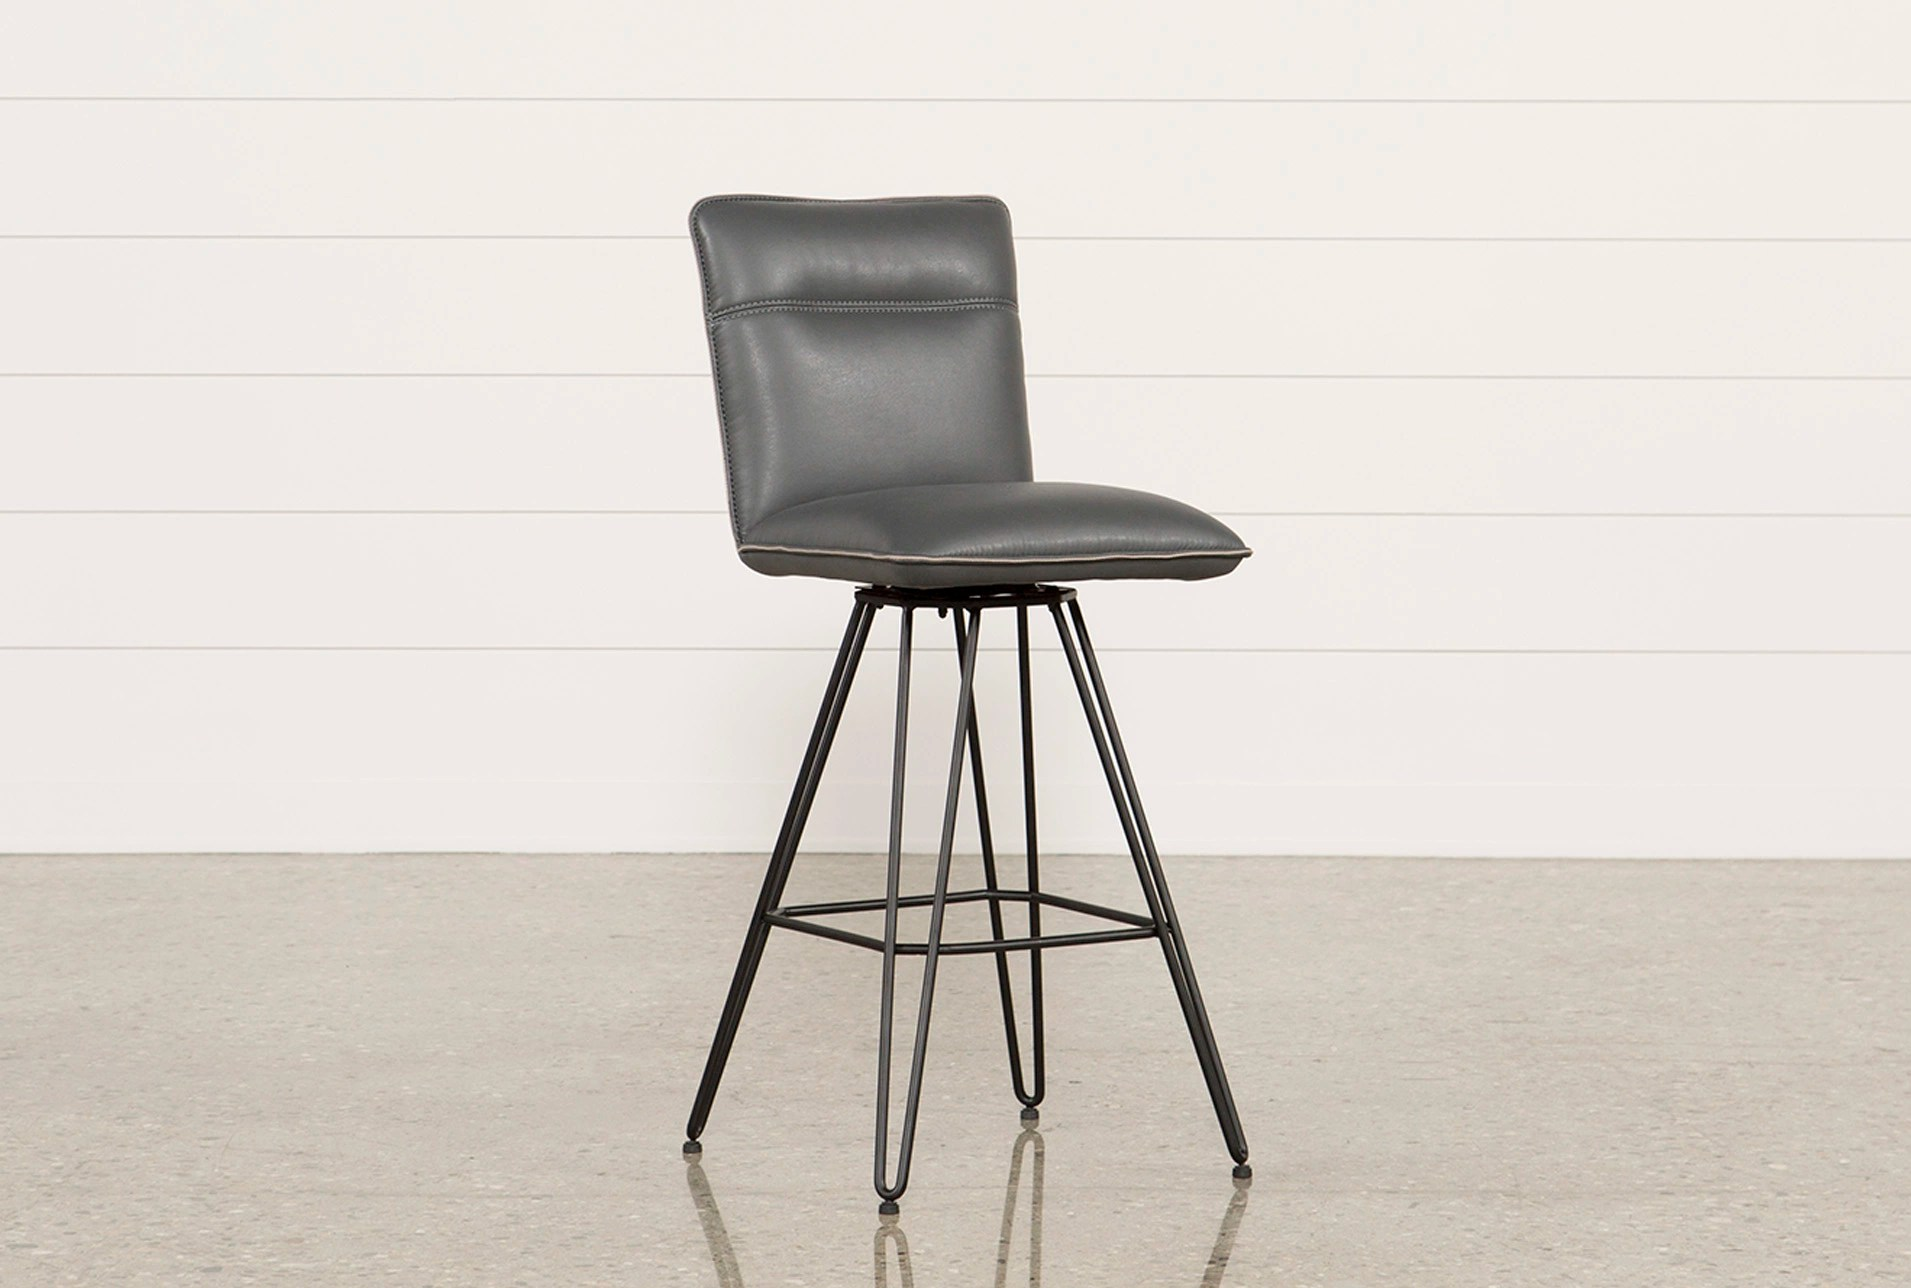 Pretty Display Product Reviews Kyle Inch Cobalt Barstool Bar Stools To Fit Your Home Decor Living Spaces Bar Stools Walmart Bar Stools Kitchen Island houzz-02 Modern Bar Stools